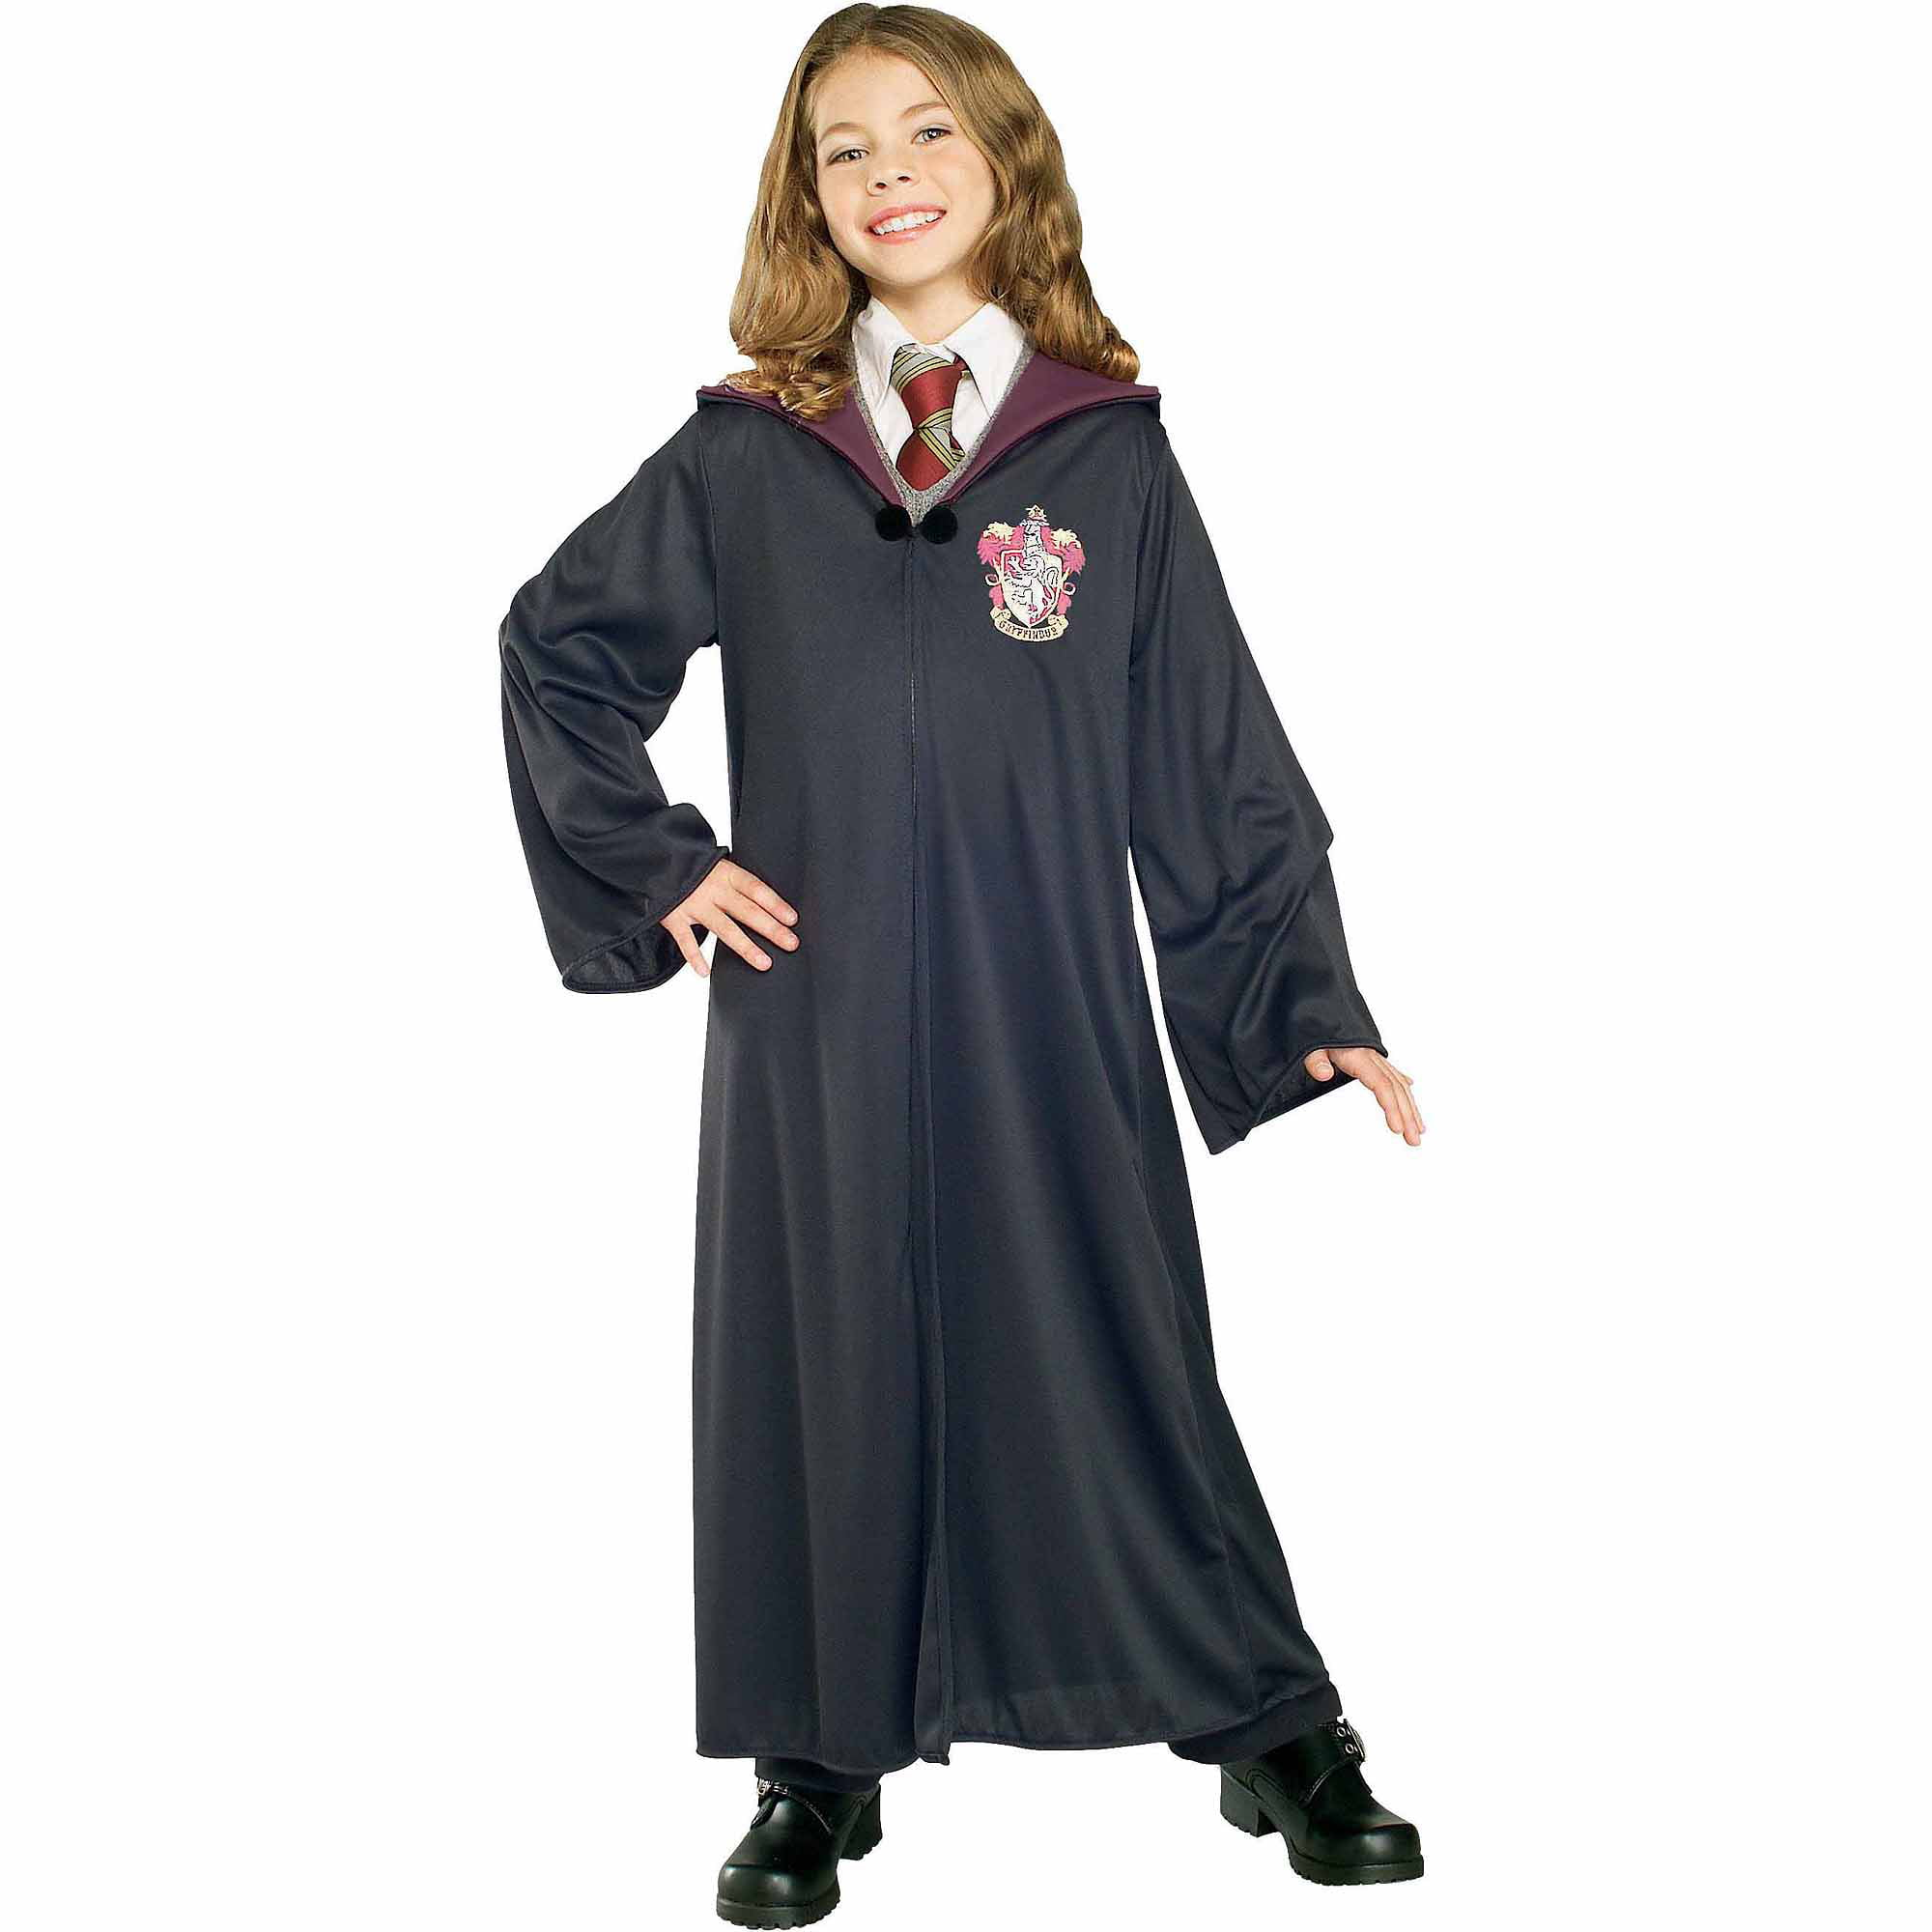 Girls Kids' Halloween Costumes - Walmart.com